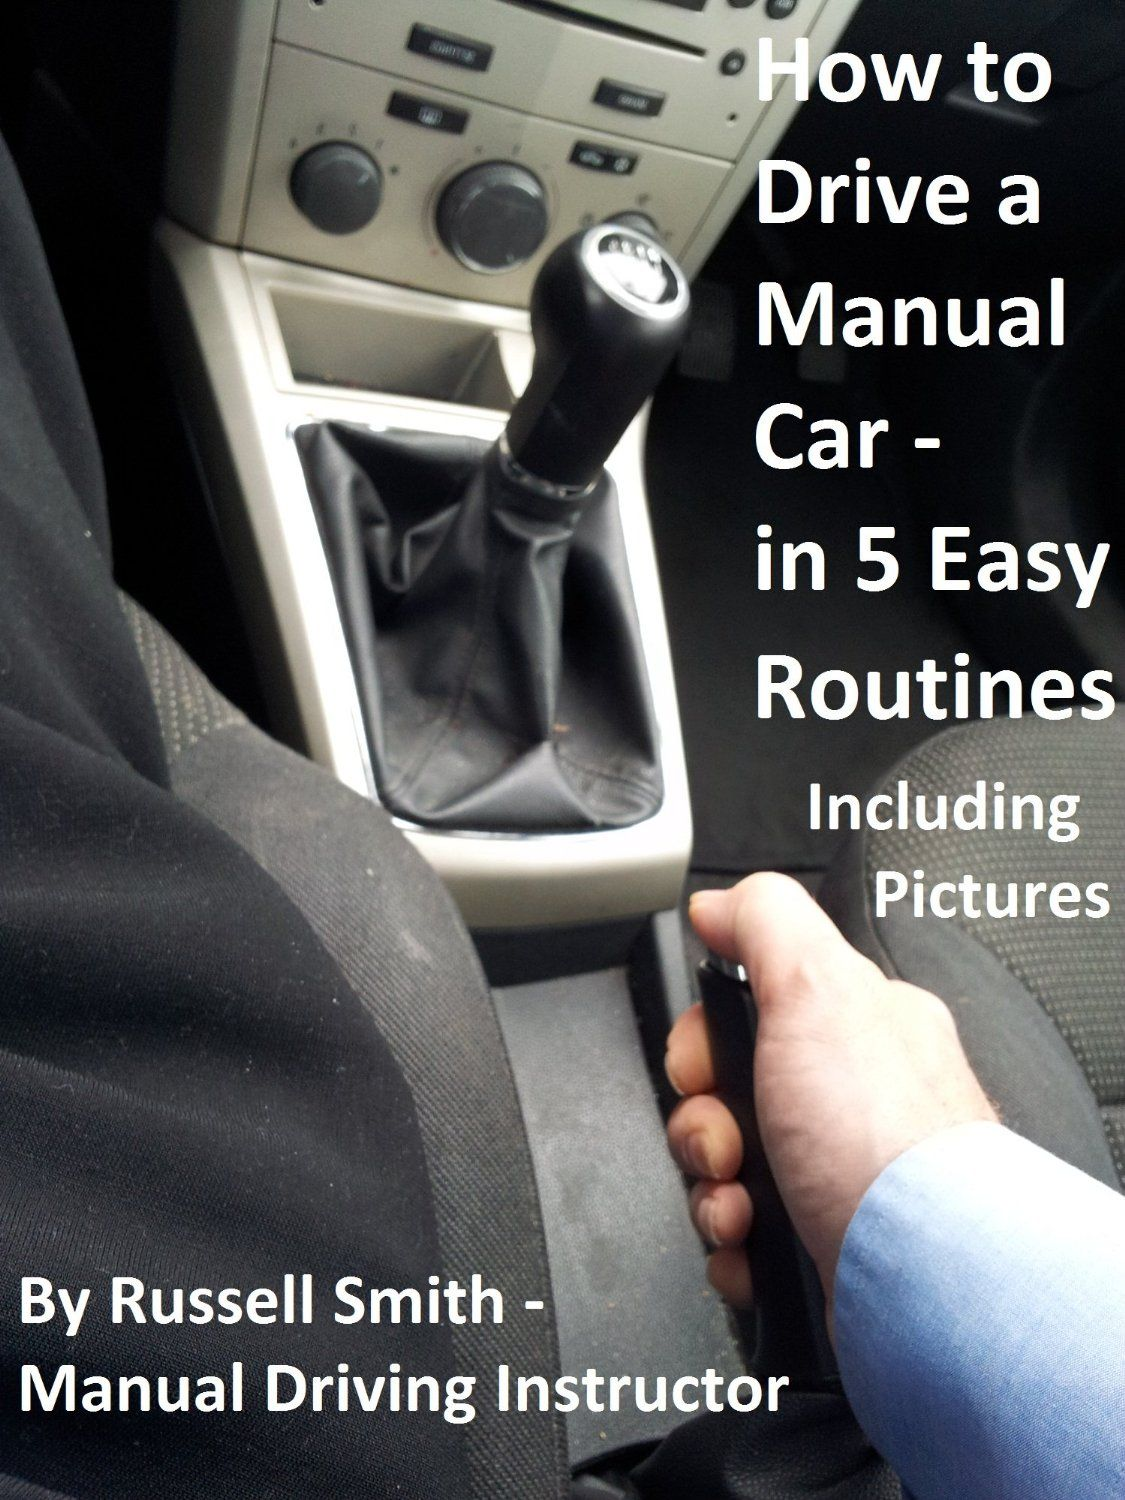 How To Drive A Stick Shift Manual Car In 5 Easy Routines Get Must Have Answers By Russell Smith Am Manual Car Learning To Drive Tips Driving Instructor